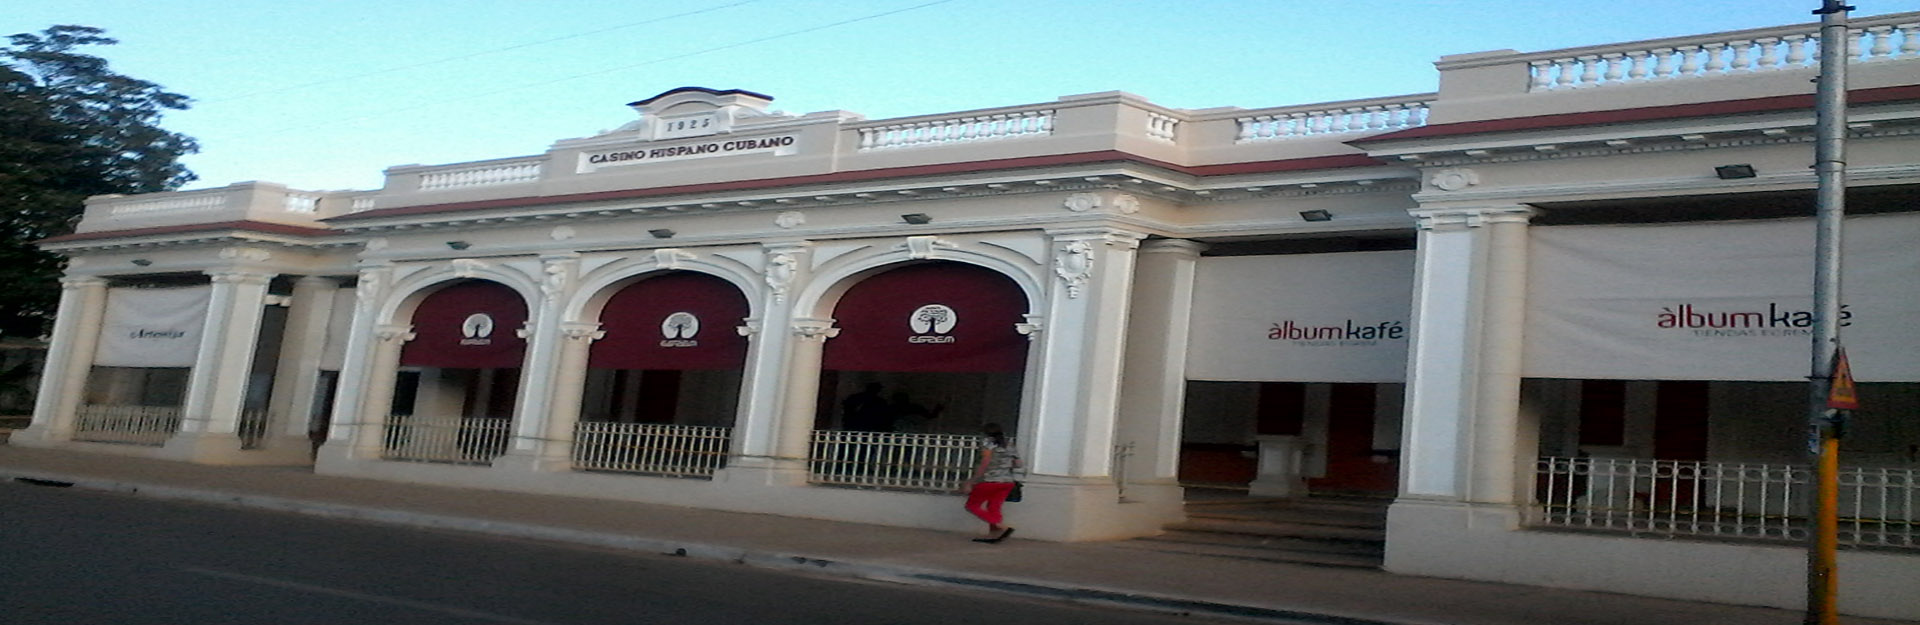 House of Music in Artemis, Cuba Travel